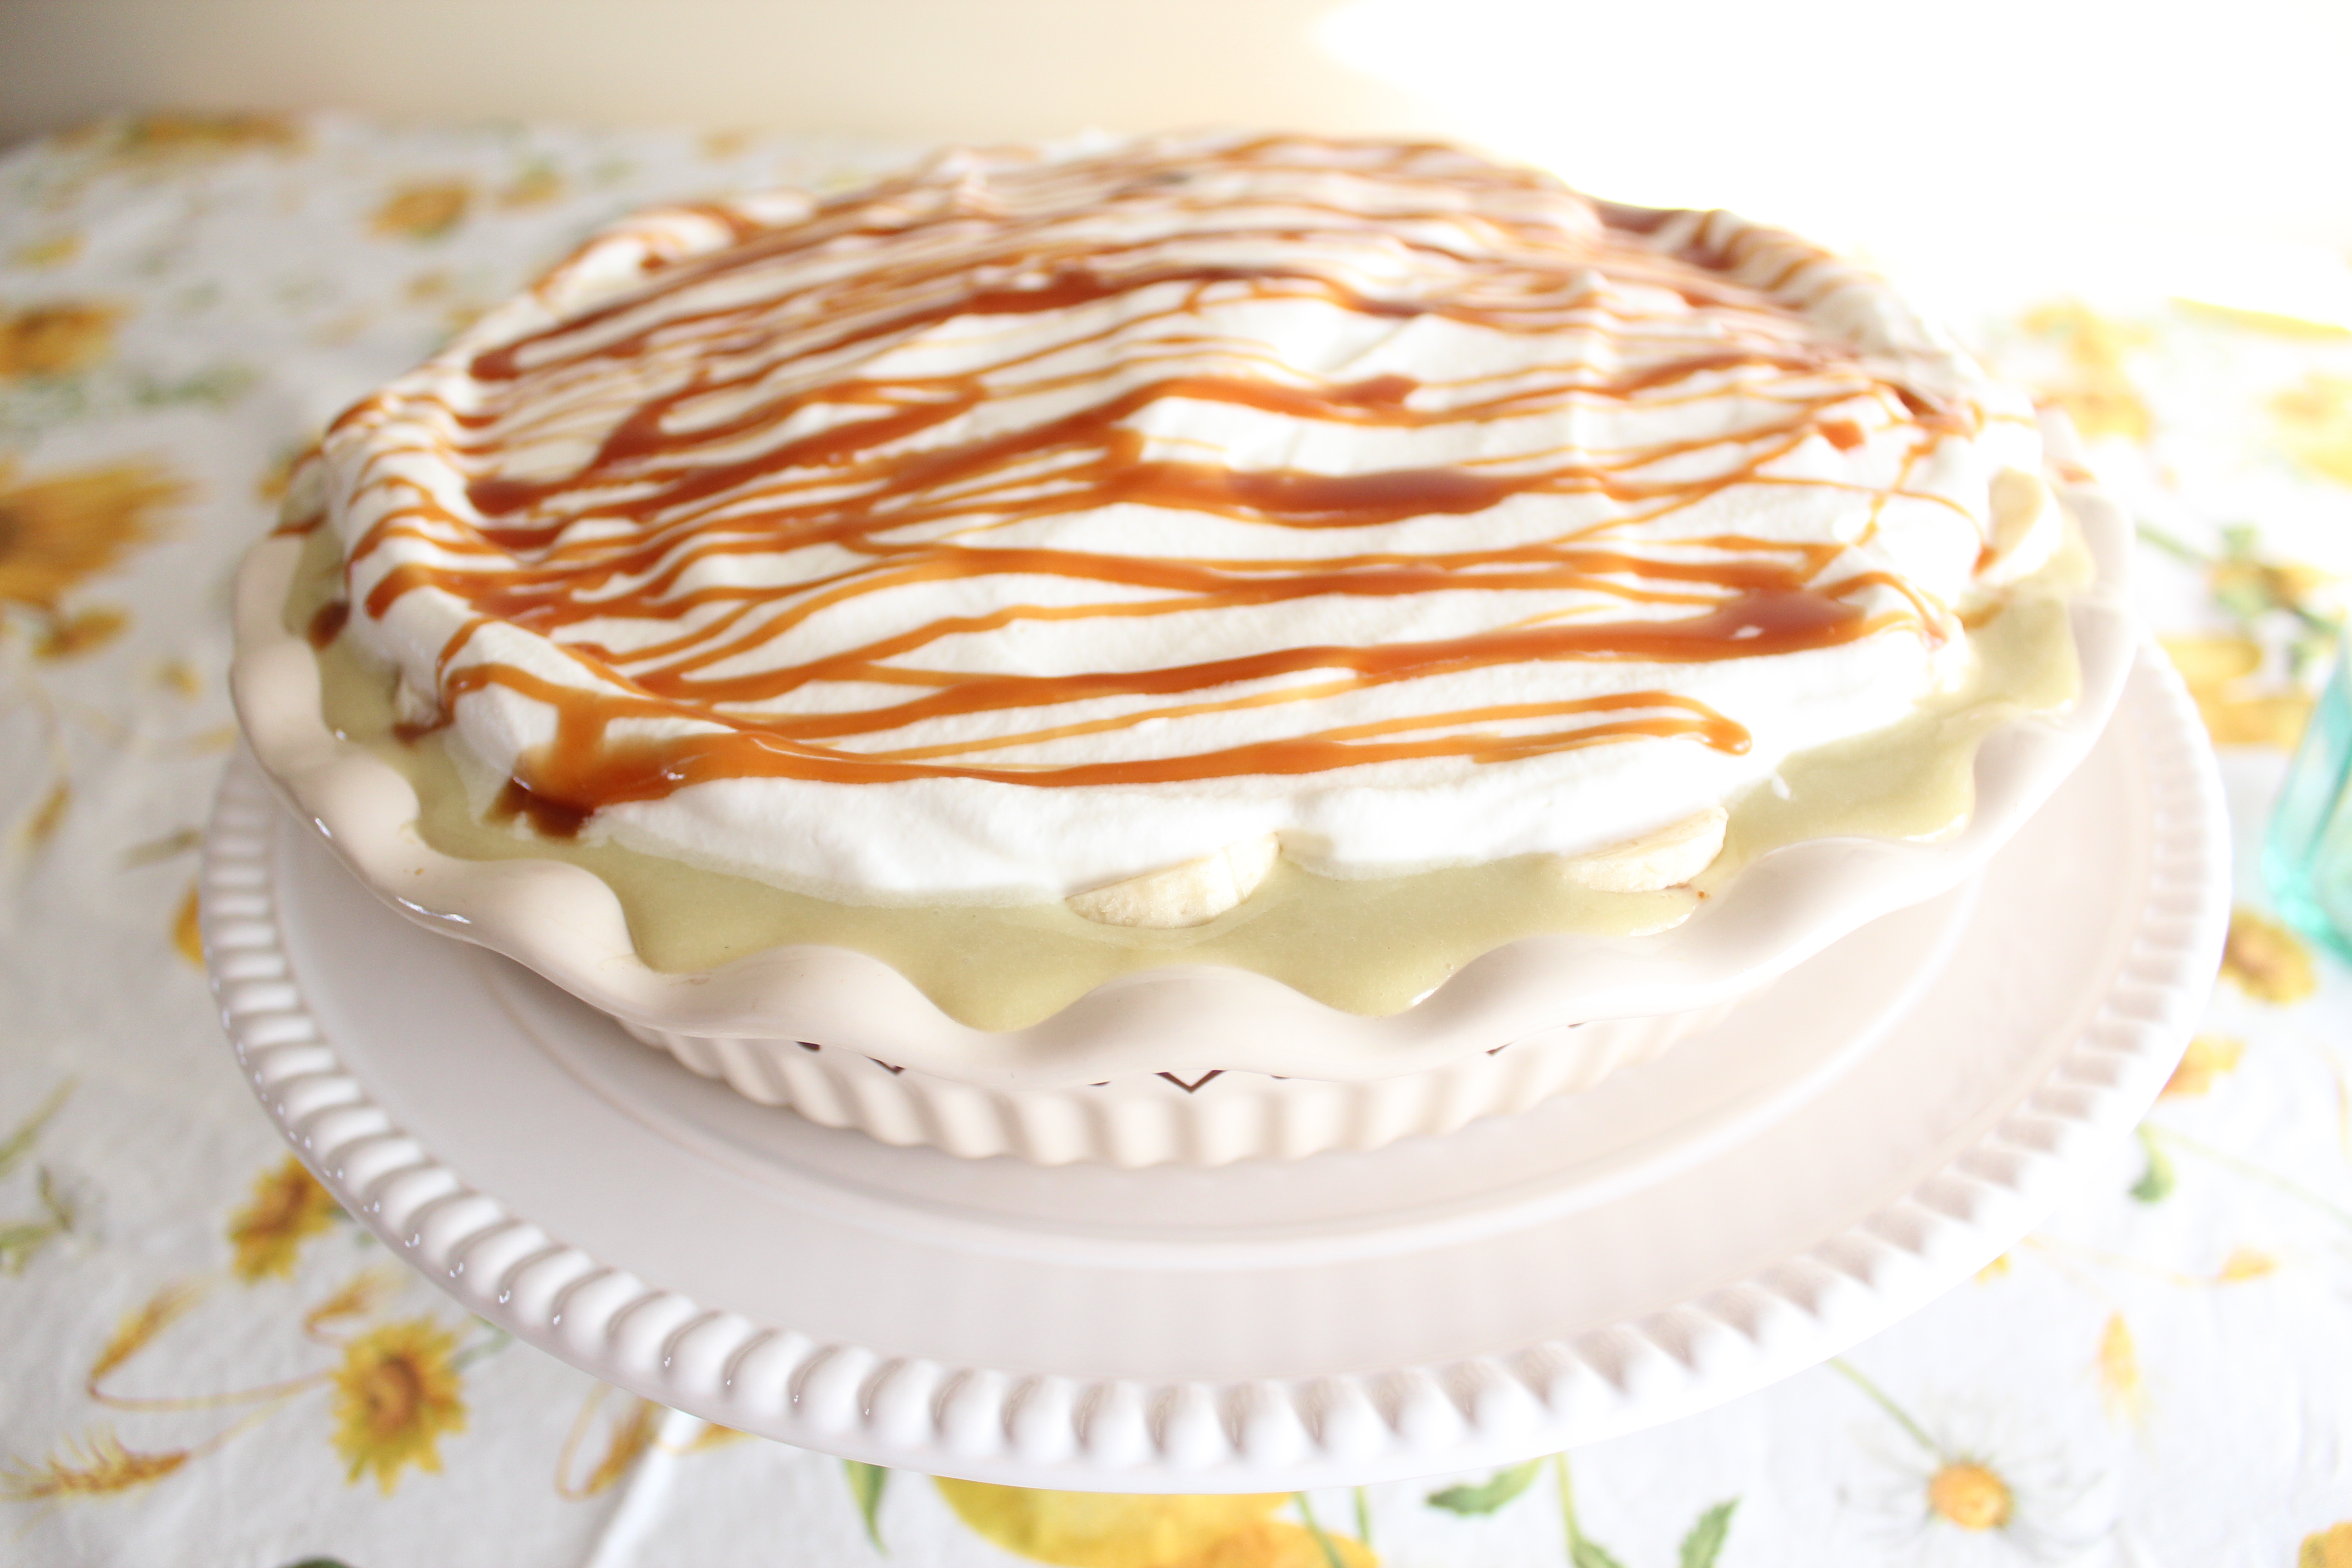 ... the vanilla bourbon cream is creeping over the sides of the pie pan